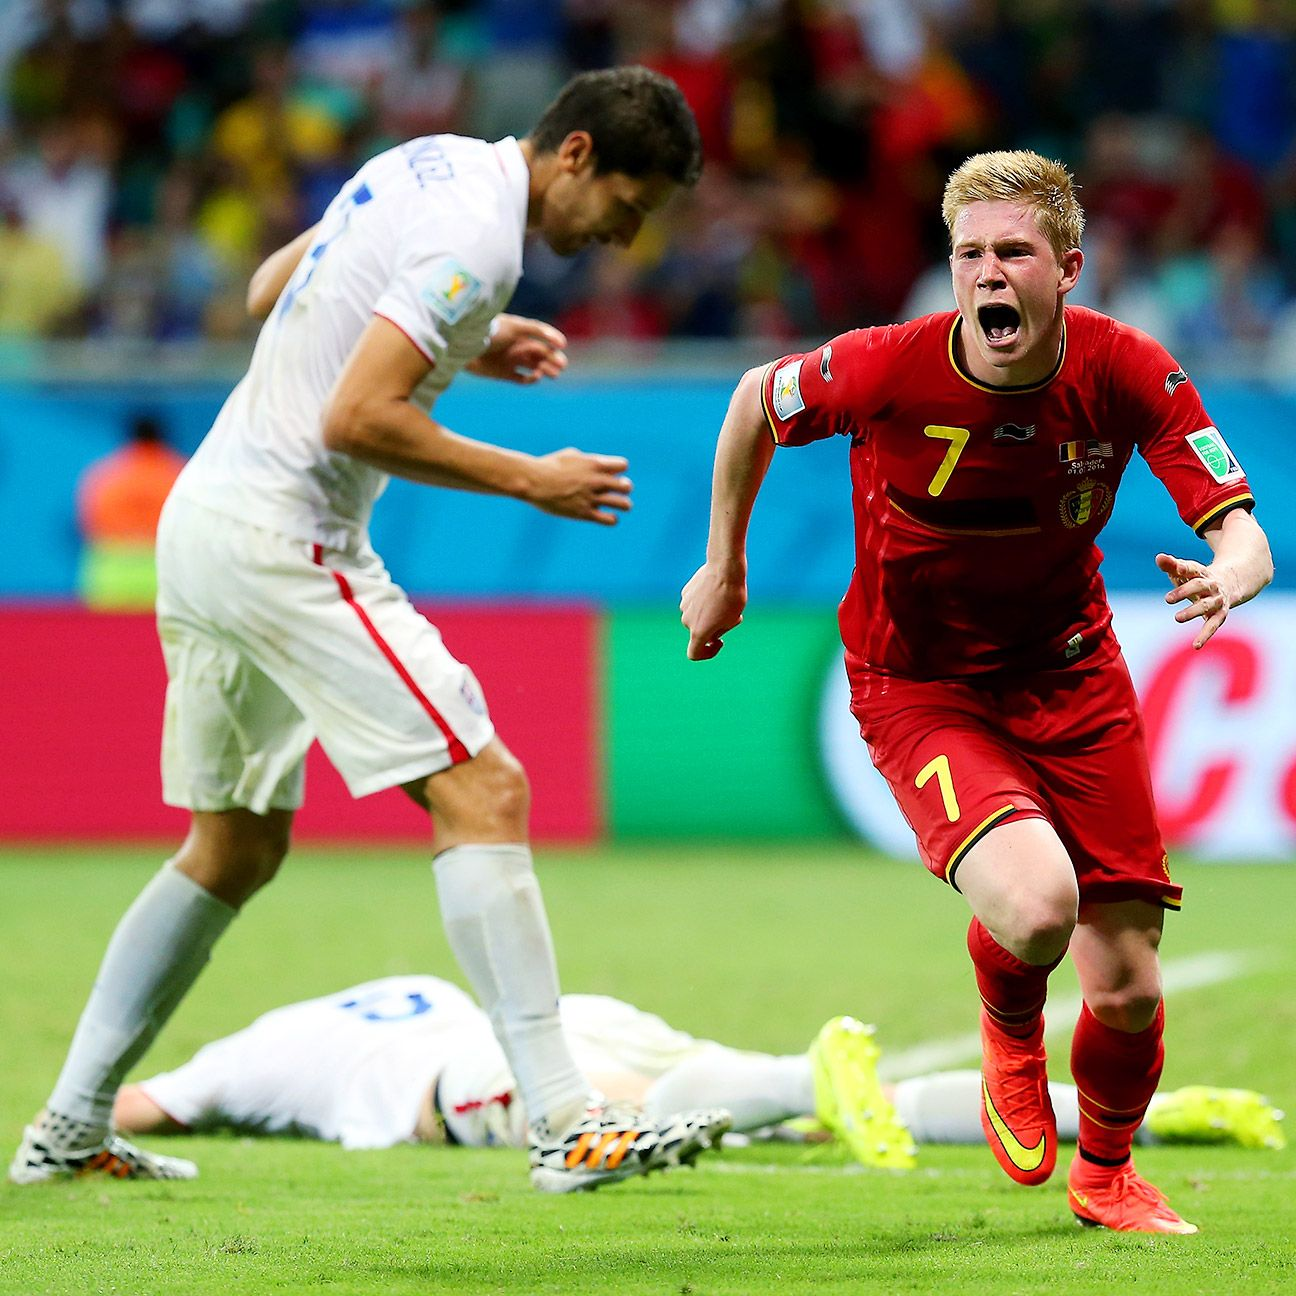 De Bruyne has been trusted to play a crucial role for Belgium and so far, he's repaid that faith.